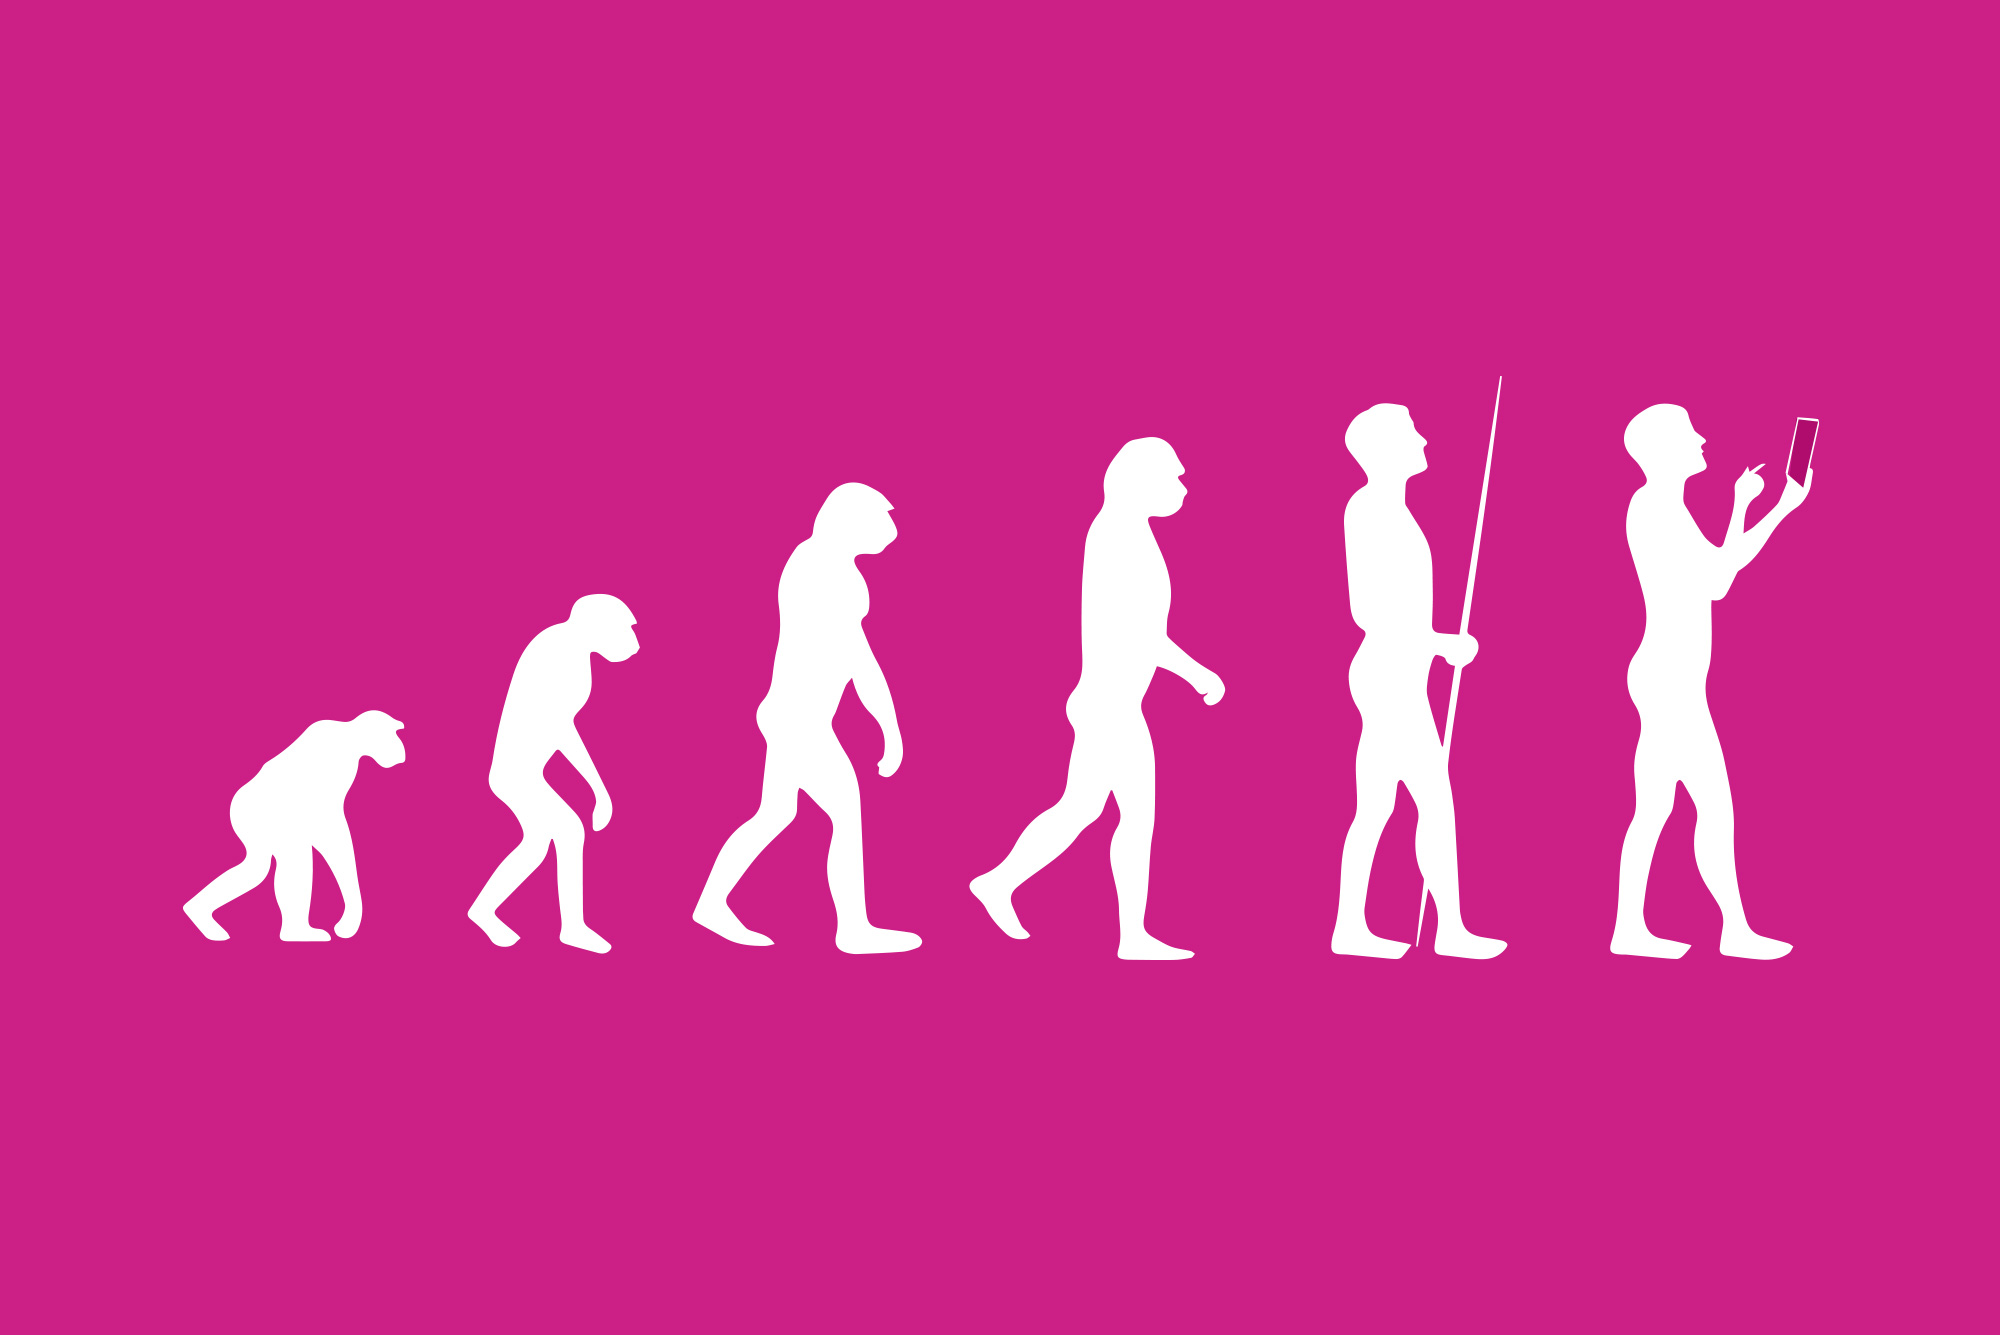 Evolution silhouettes on pink background - Customer relationship management